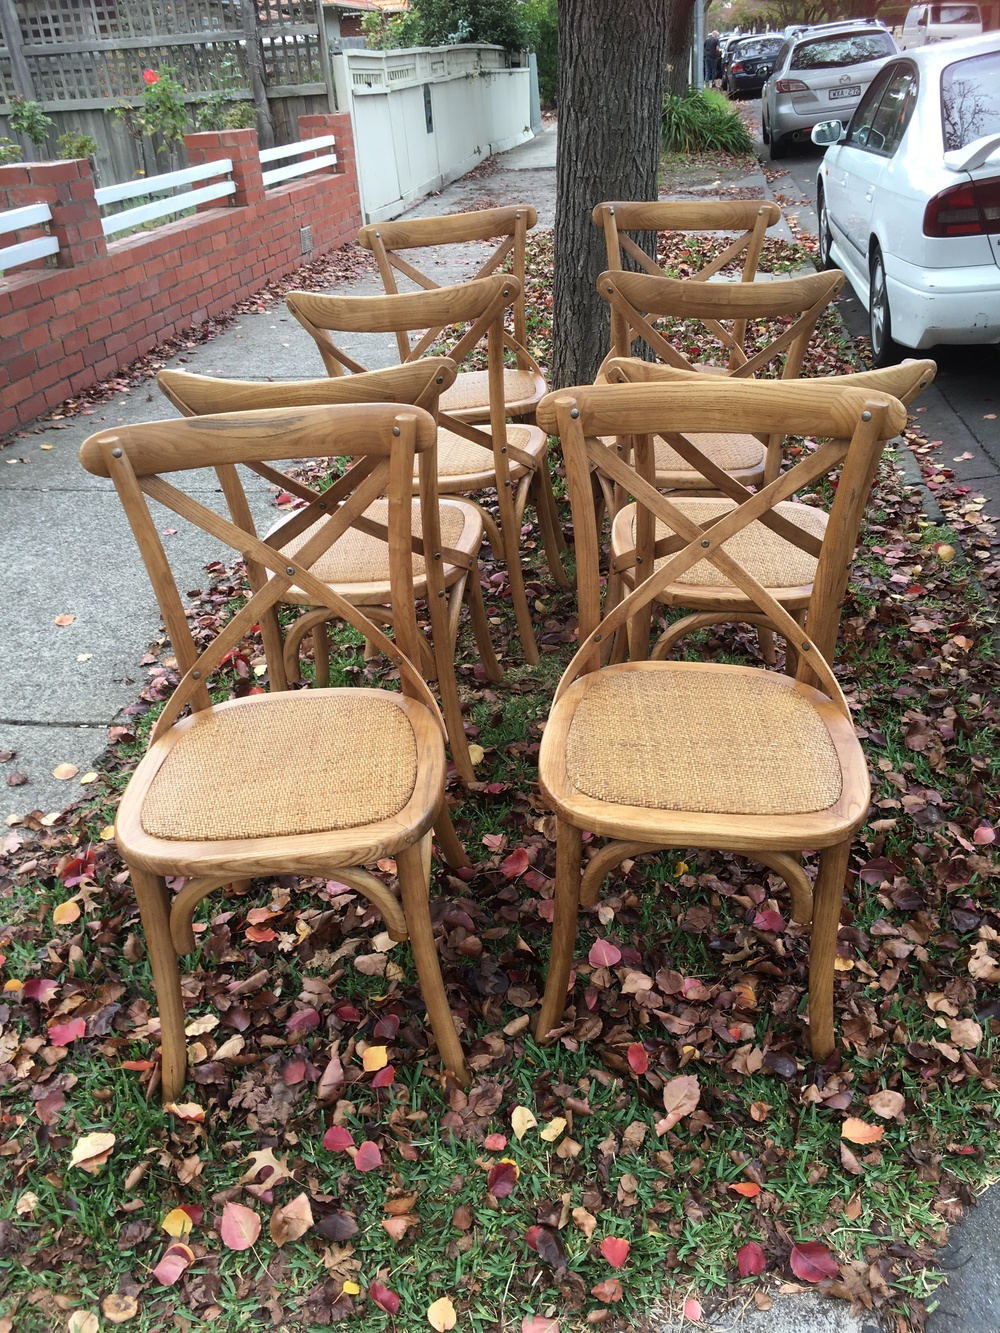 8 beautiful dining chairs scored from ebay!